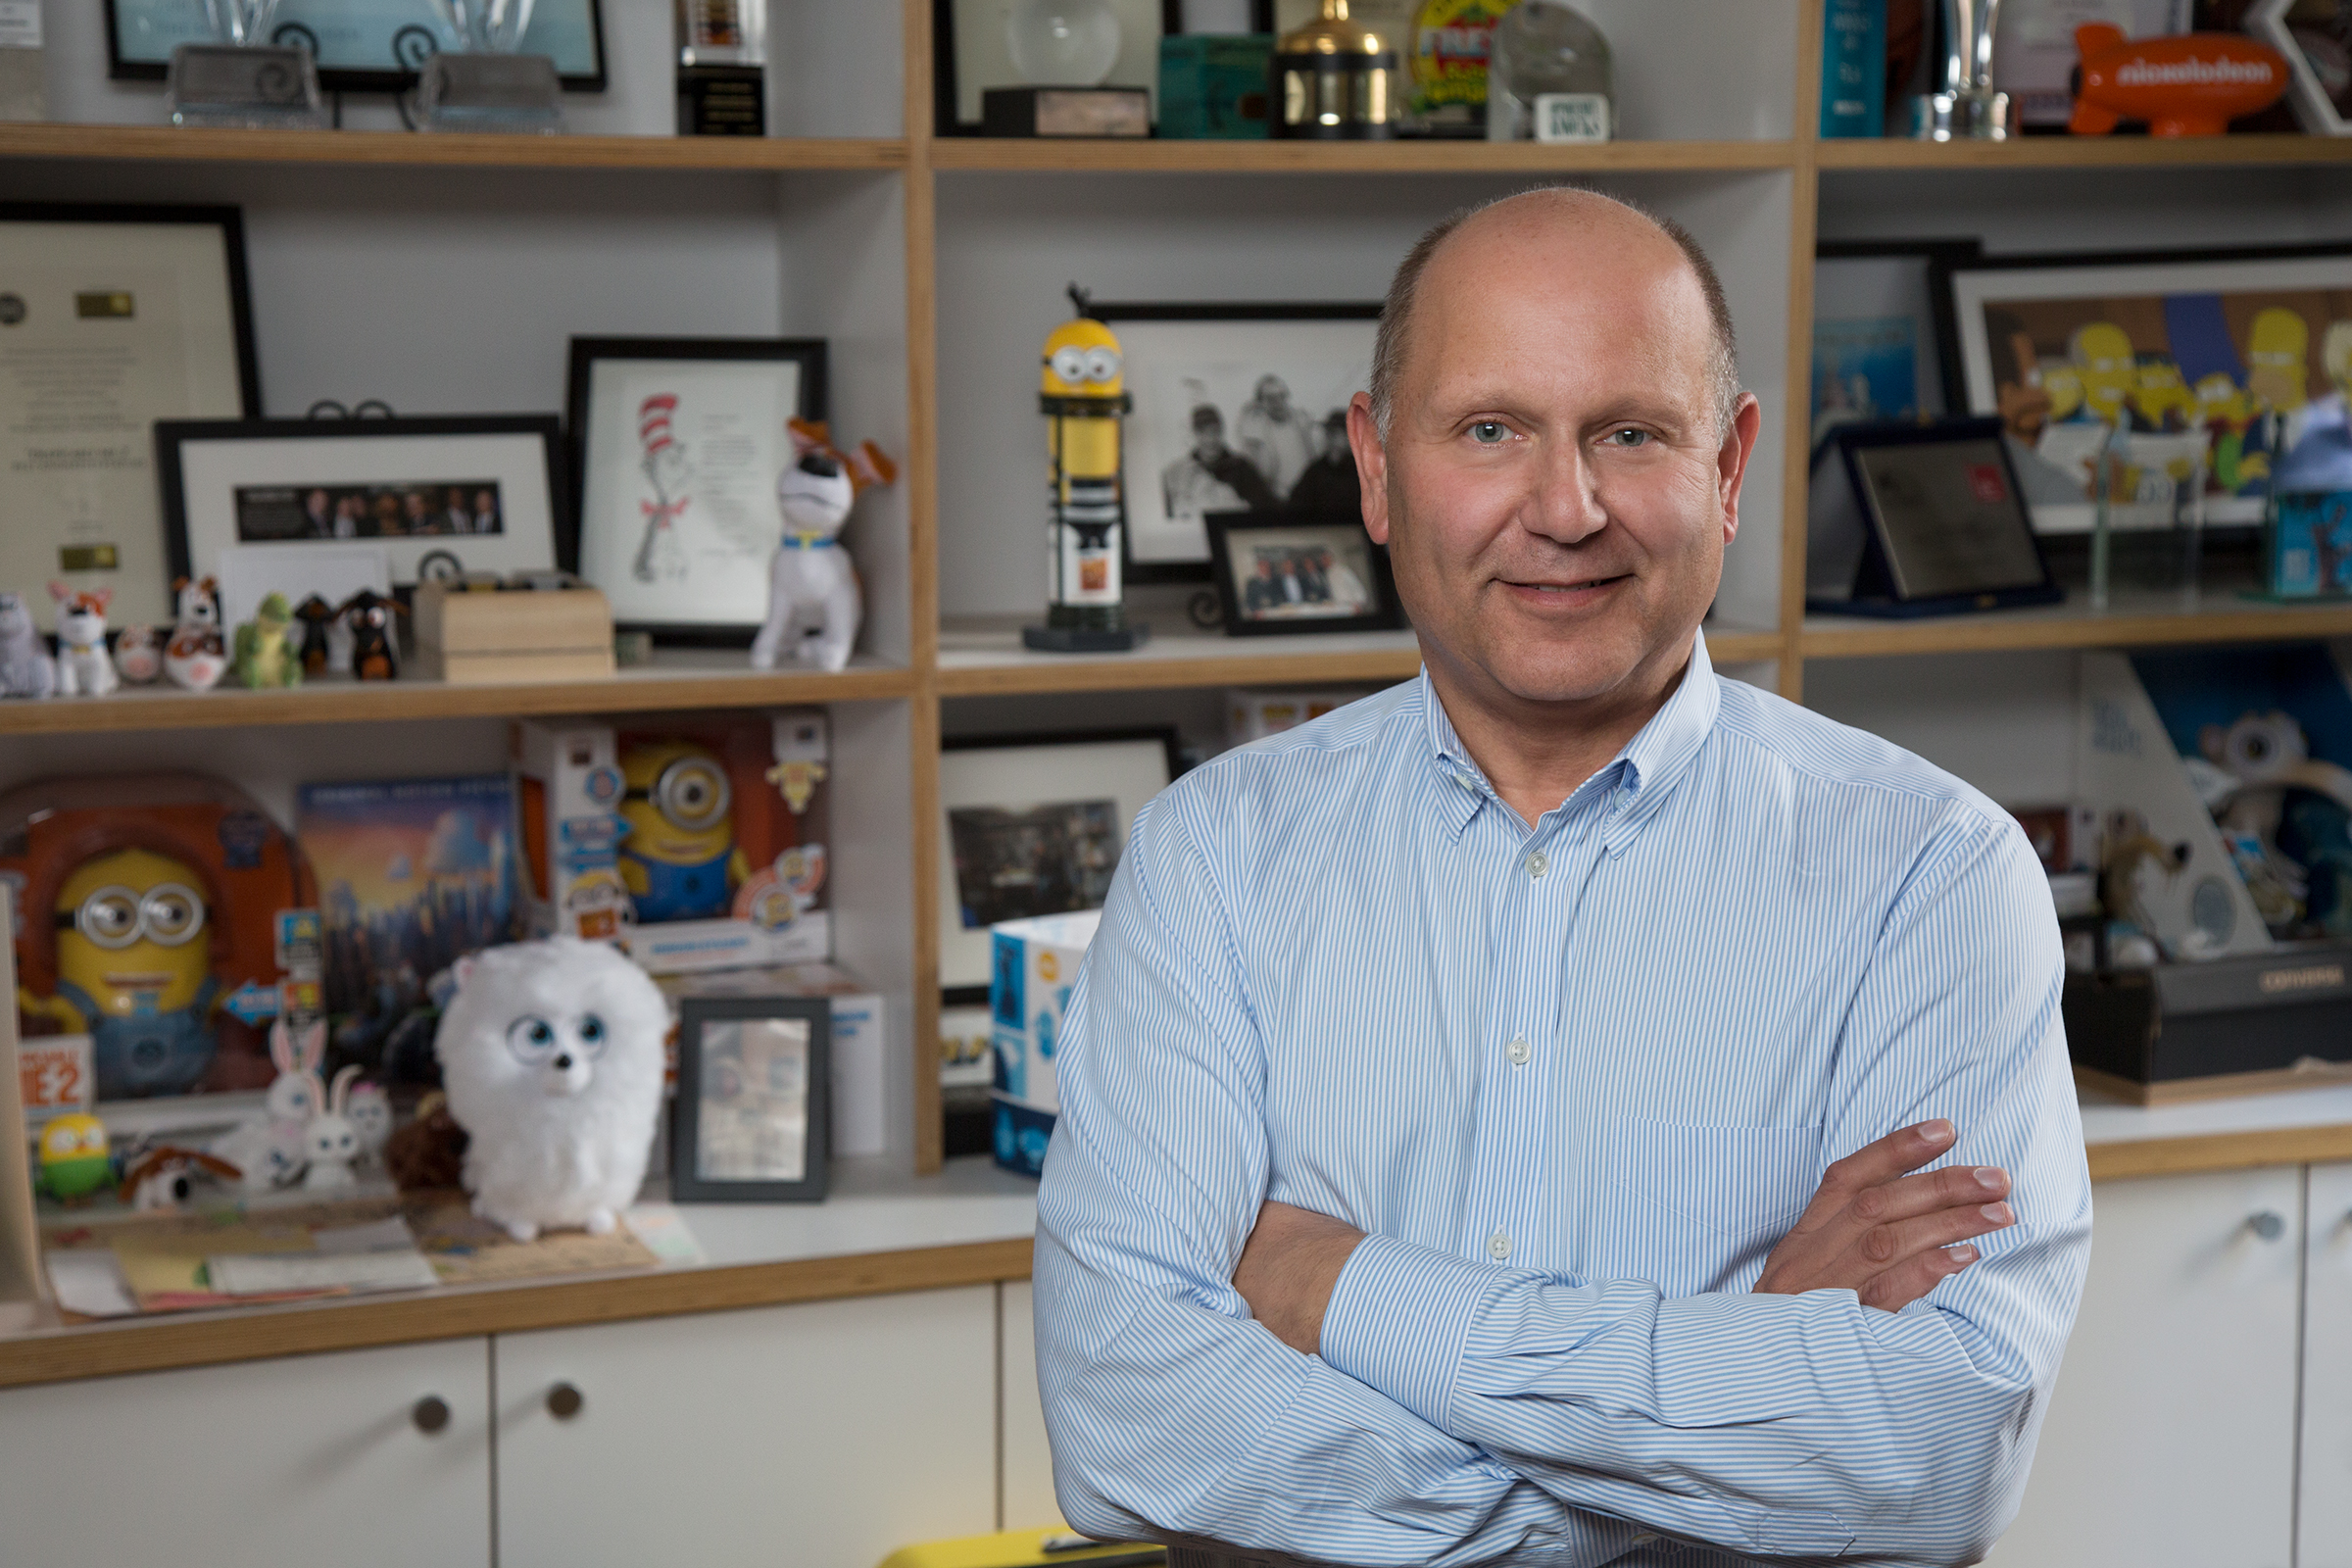 VES to Honor Illumination's Chris Meledandri with Lifetime Achievement Award